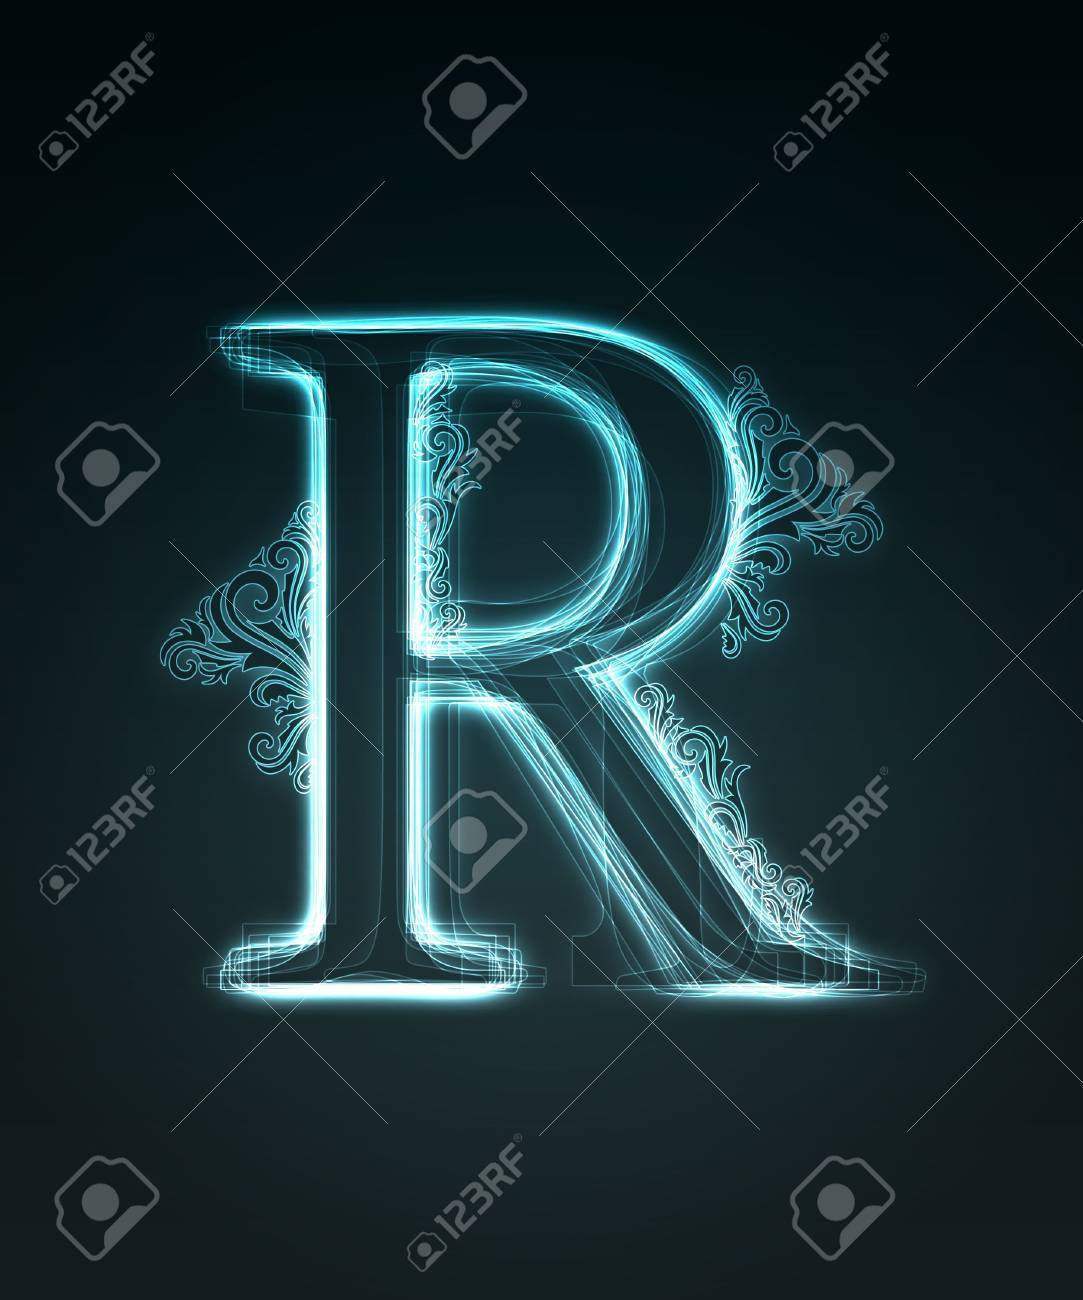 Glowing neon letter with floral decoration on black background. Stock Photo - 6477511